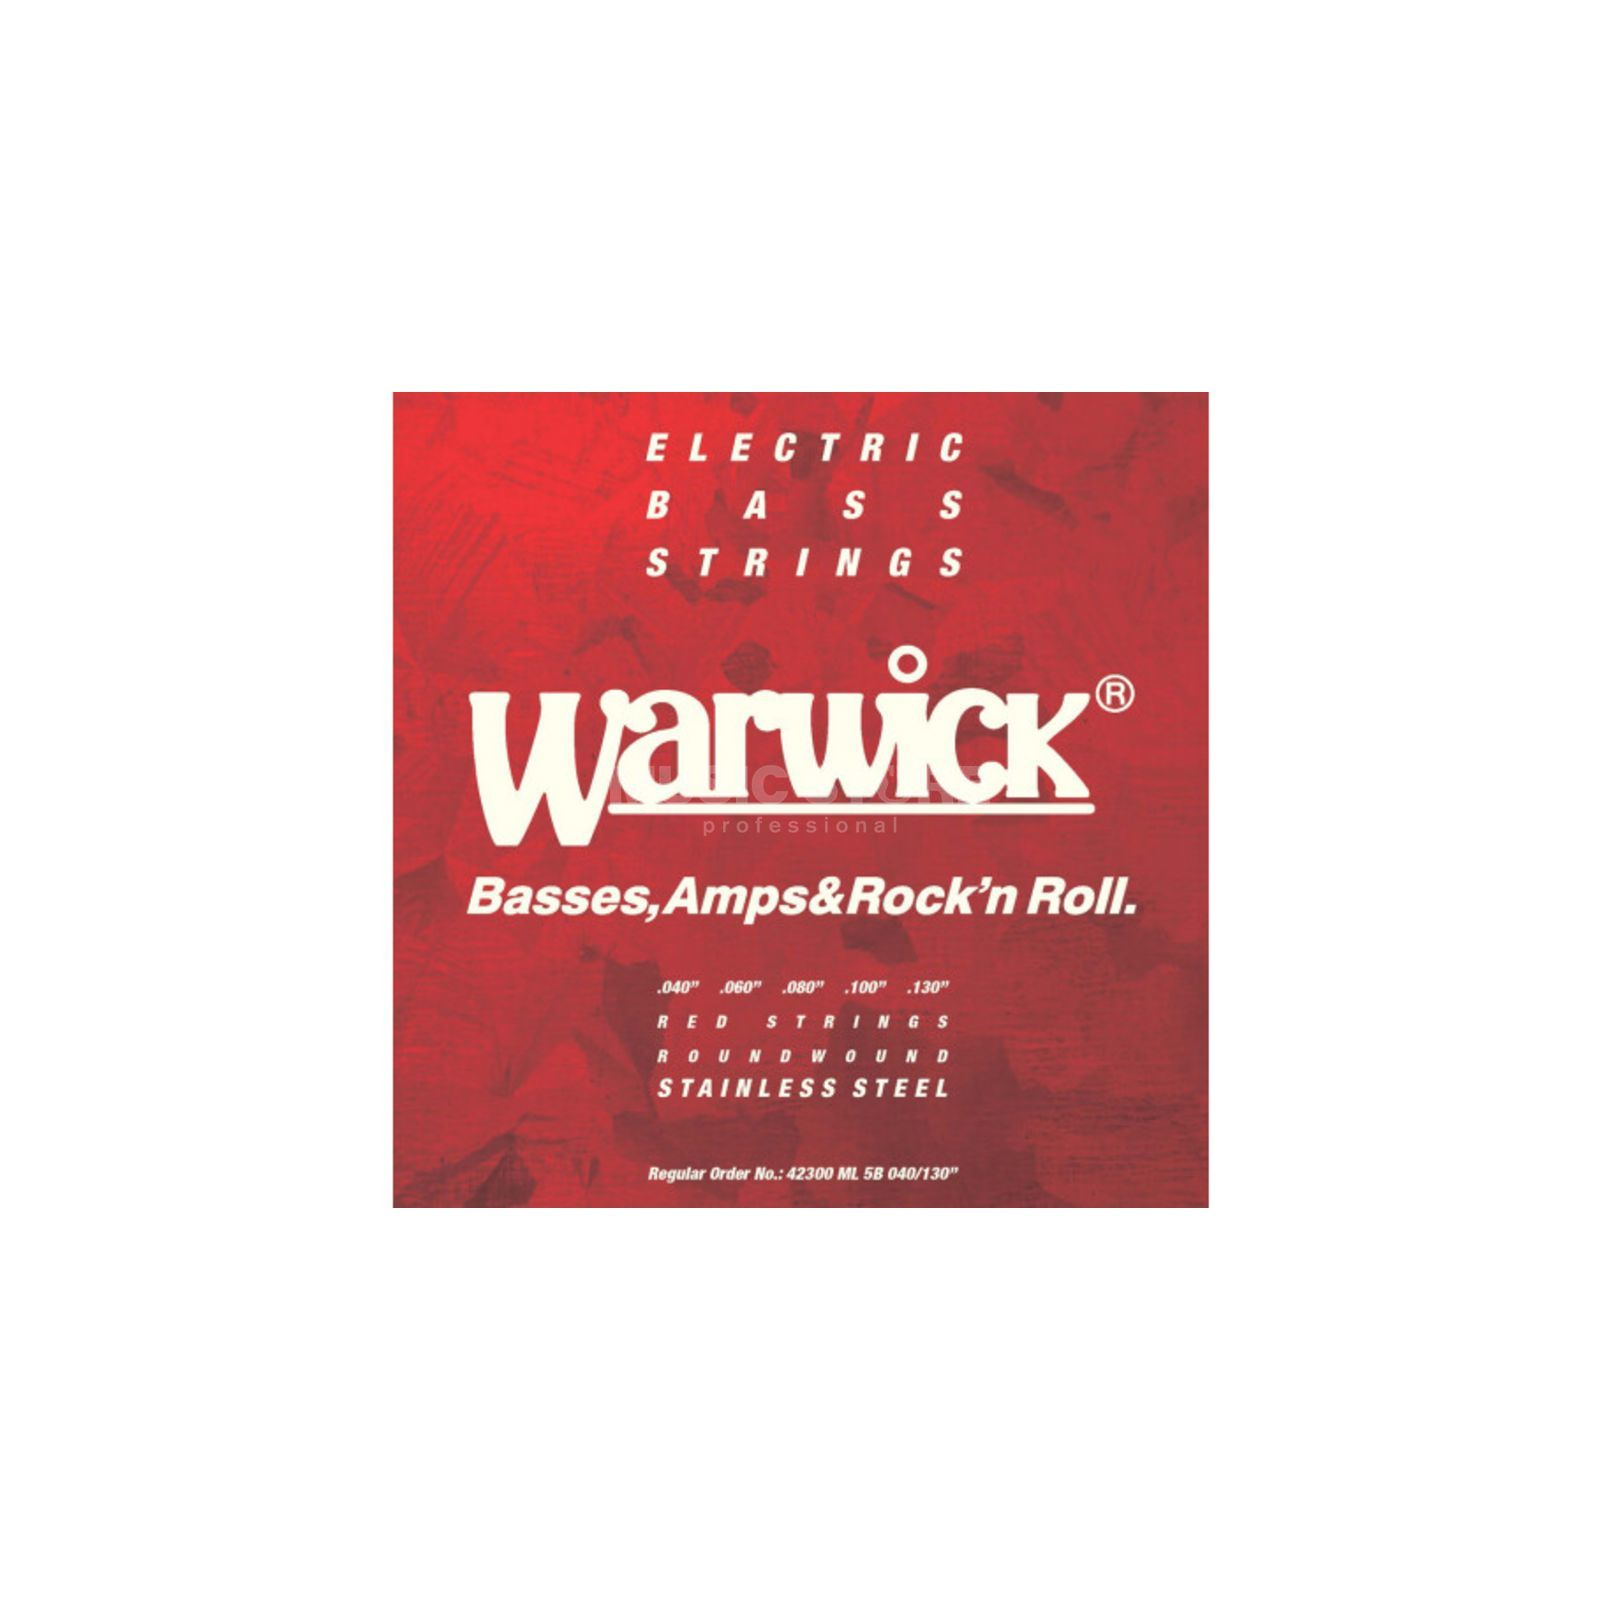 Warwick Bass Strings, 40-130, Red 5 String Set, Stainless Steel Zdjęcie produktu